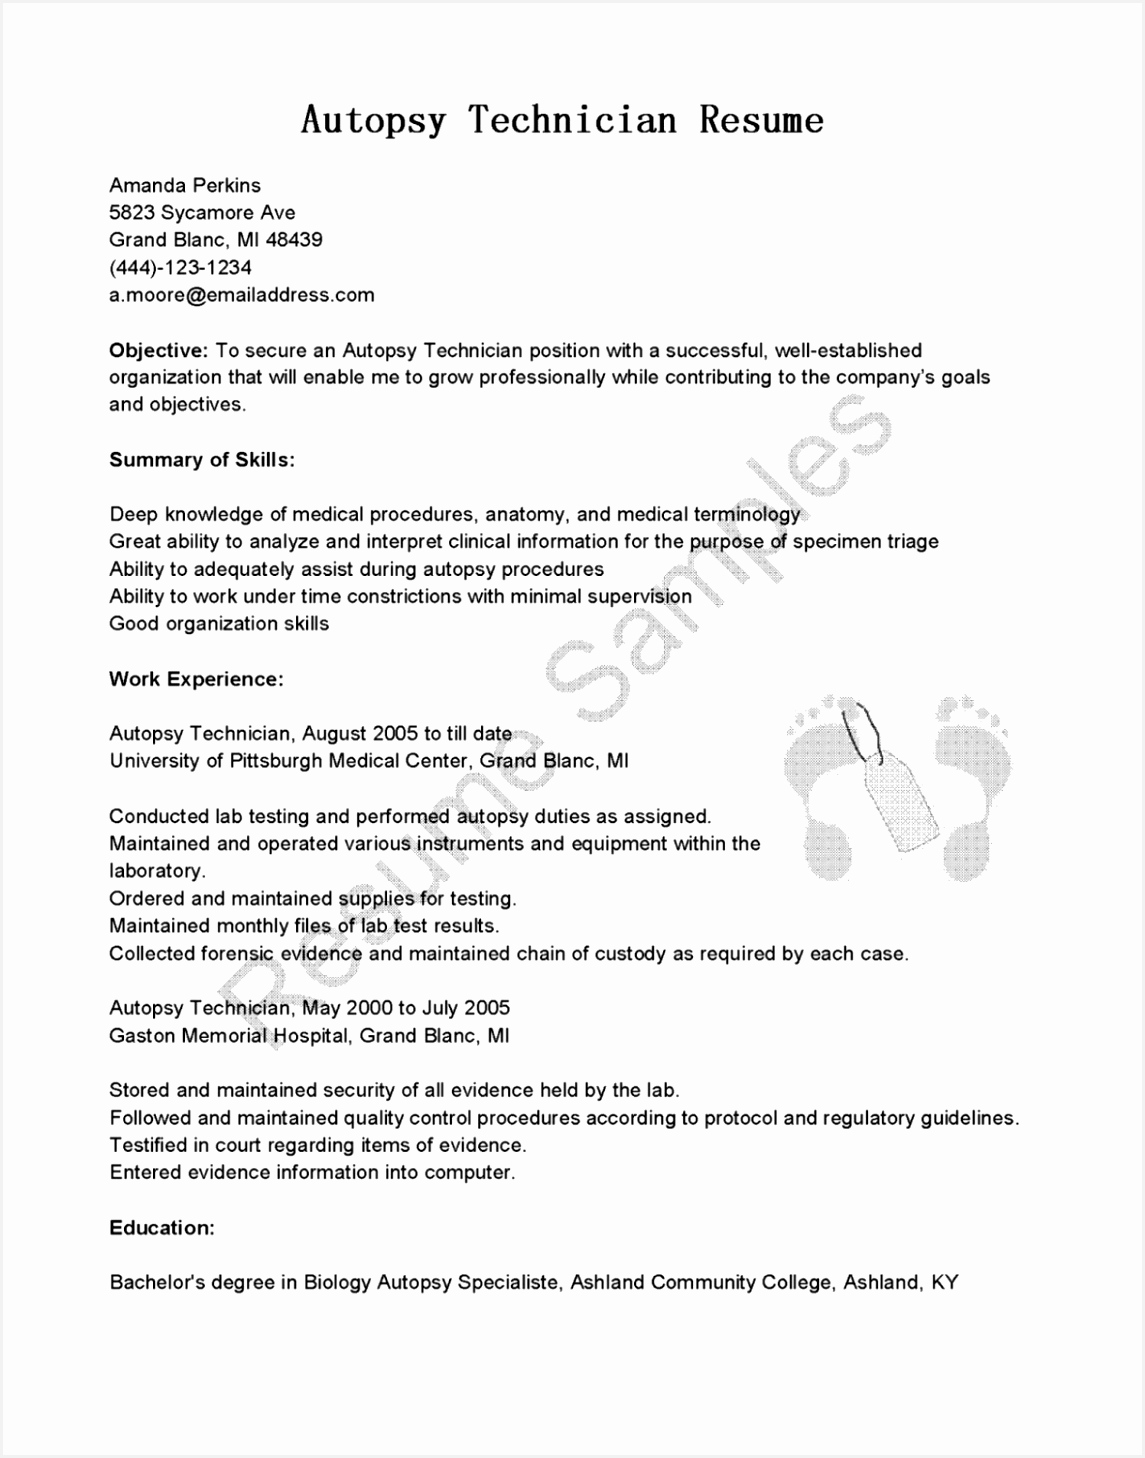 Cv Templates Computer Skills Emshs Fresh Professional Engineer Resume Template — Resumes Project Of 4 Cv Templates Computer Skills